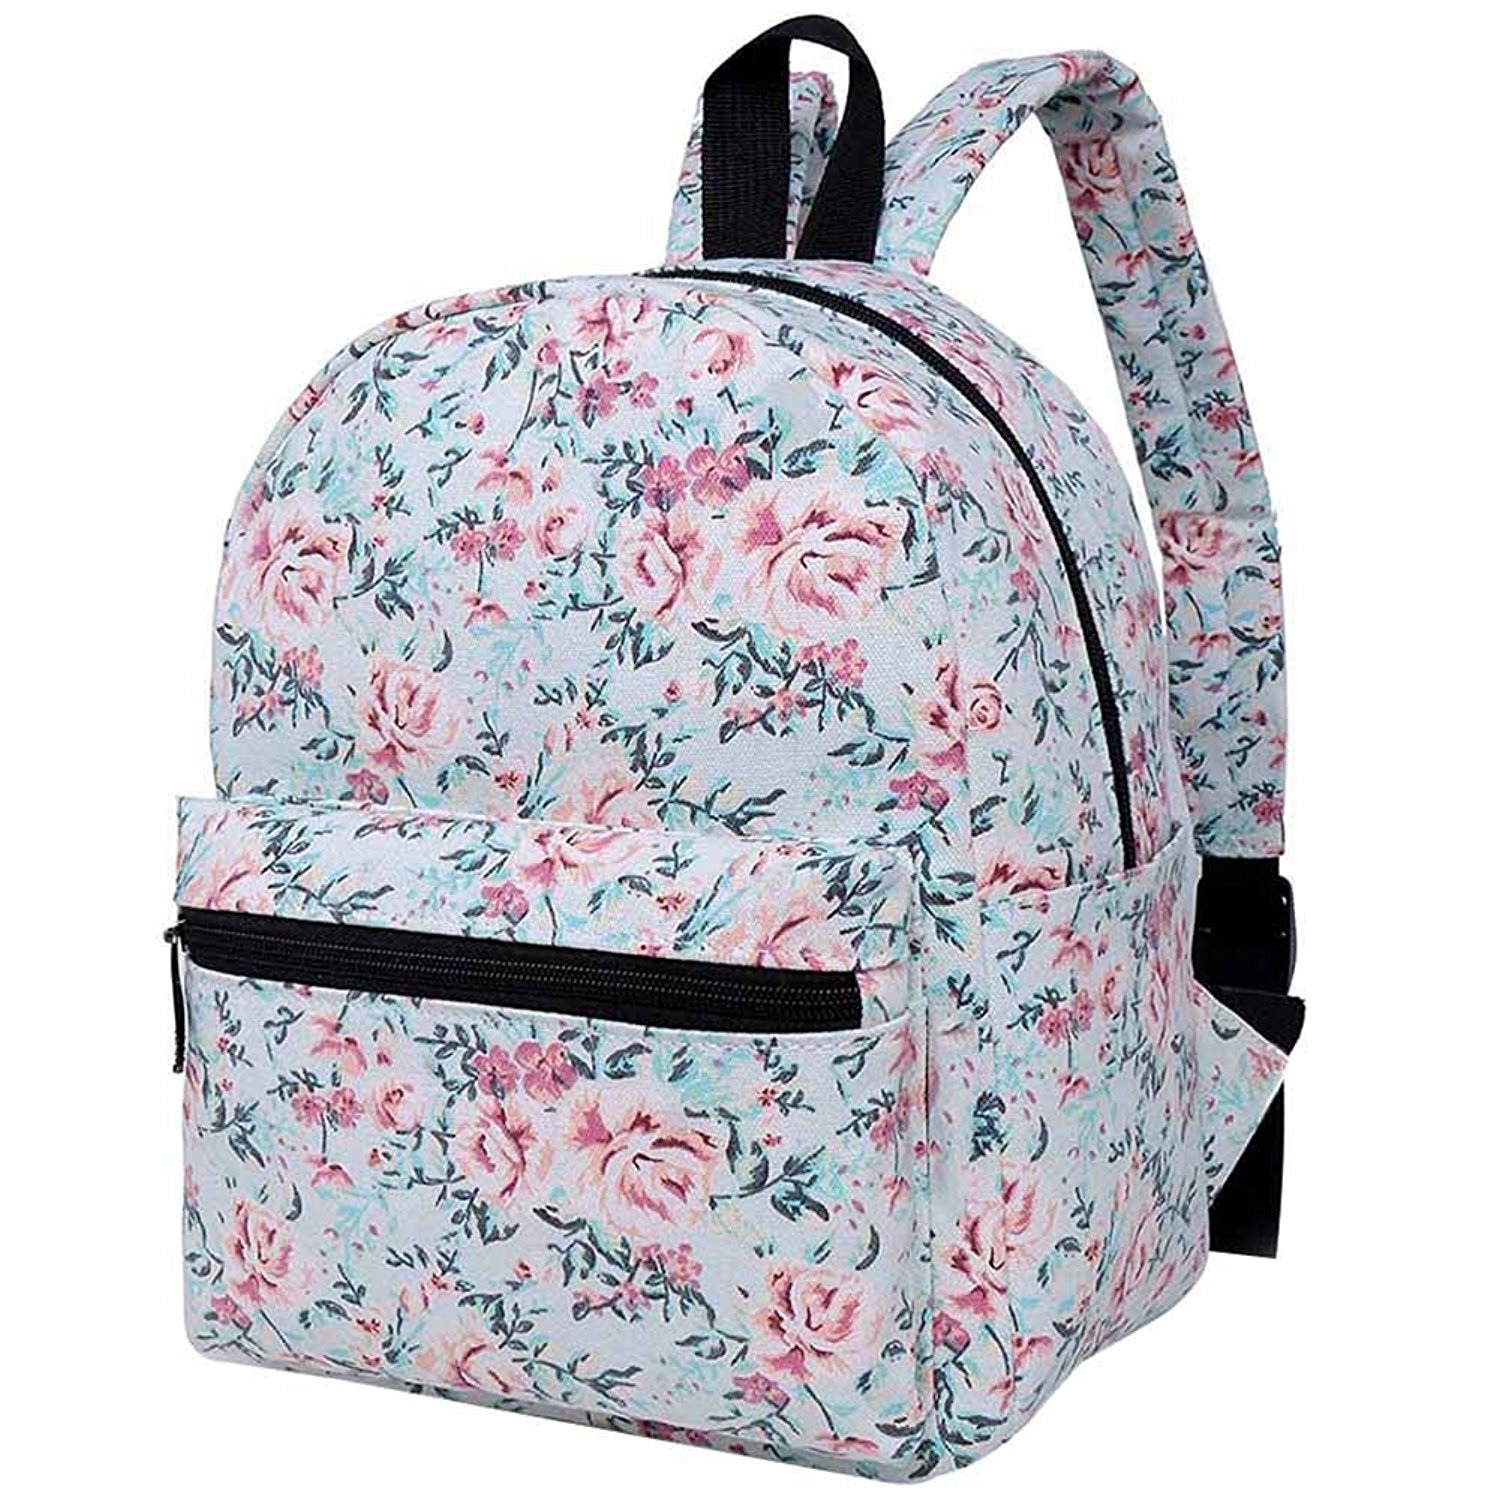 Cheap Mini Floral Backpack, find Mini Floral Backpack deals